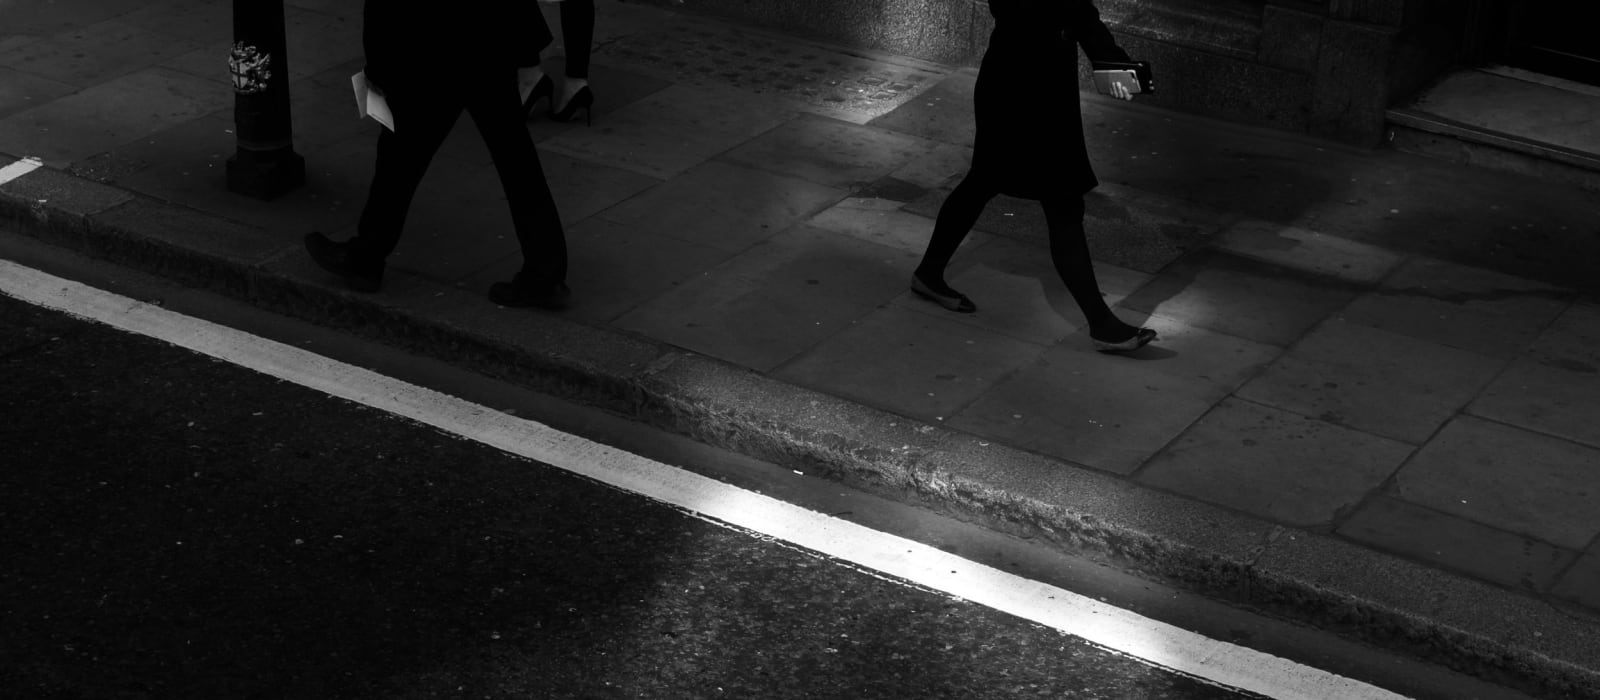 CEO Blog: Reflecting on the first six months of the London Stalking Support Service